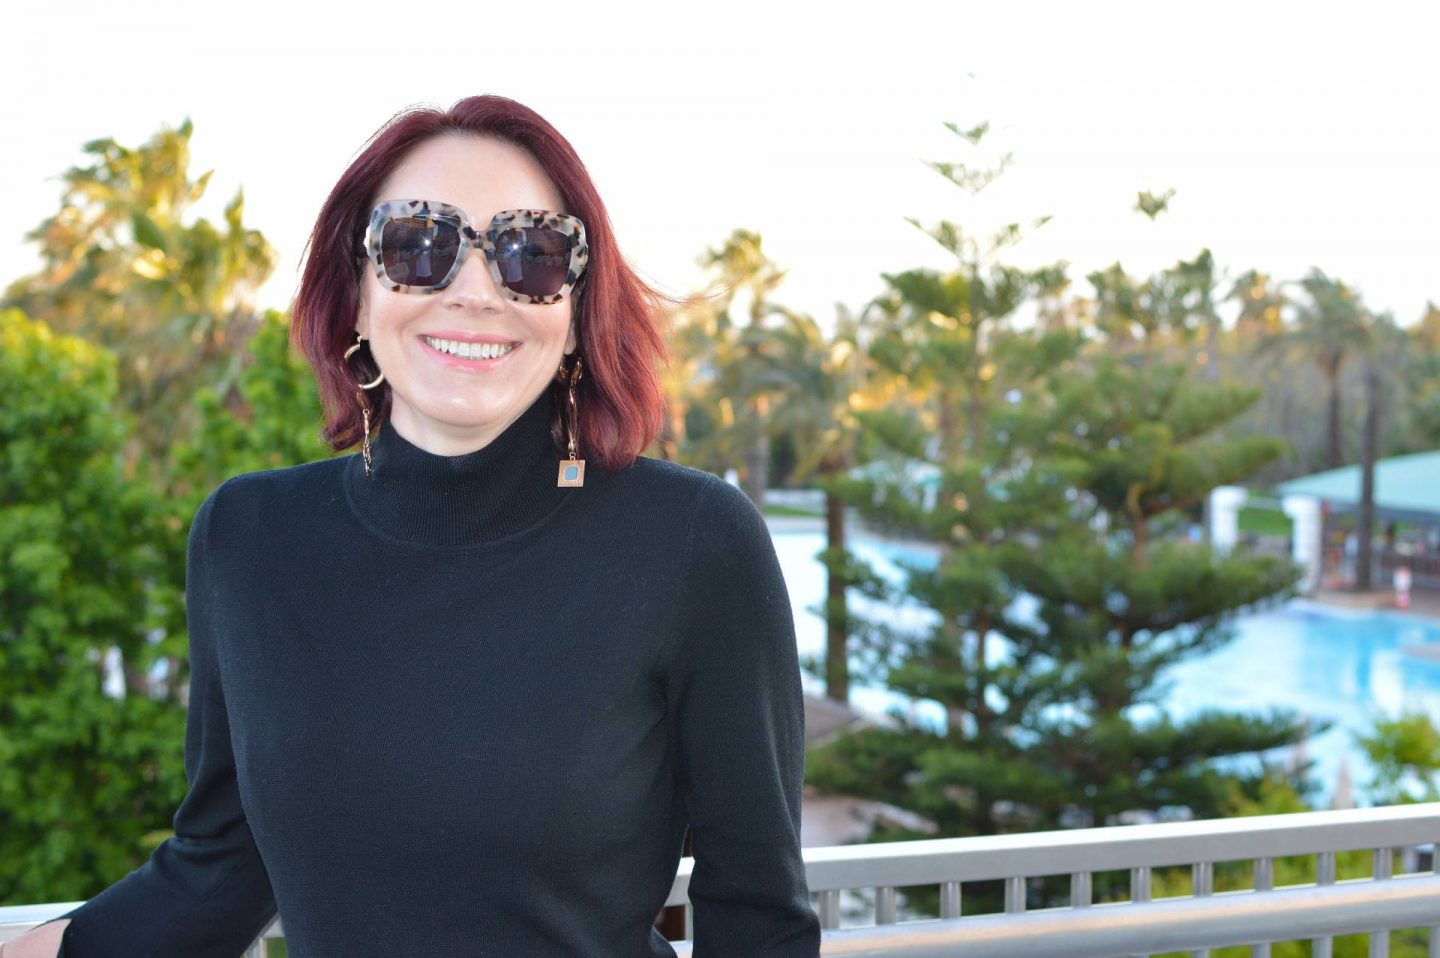 A Stylish Outfit For Travelling, Iris & Ink black high neck sweater, Finery mismatch earrings, Max Mara square sunglasses